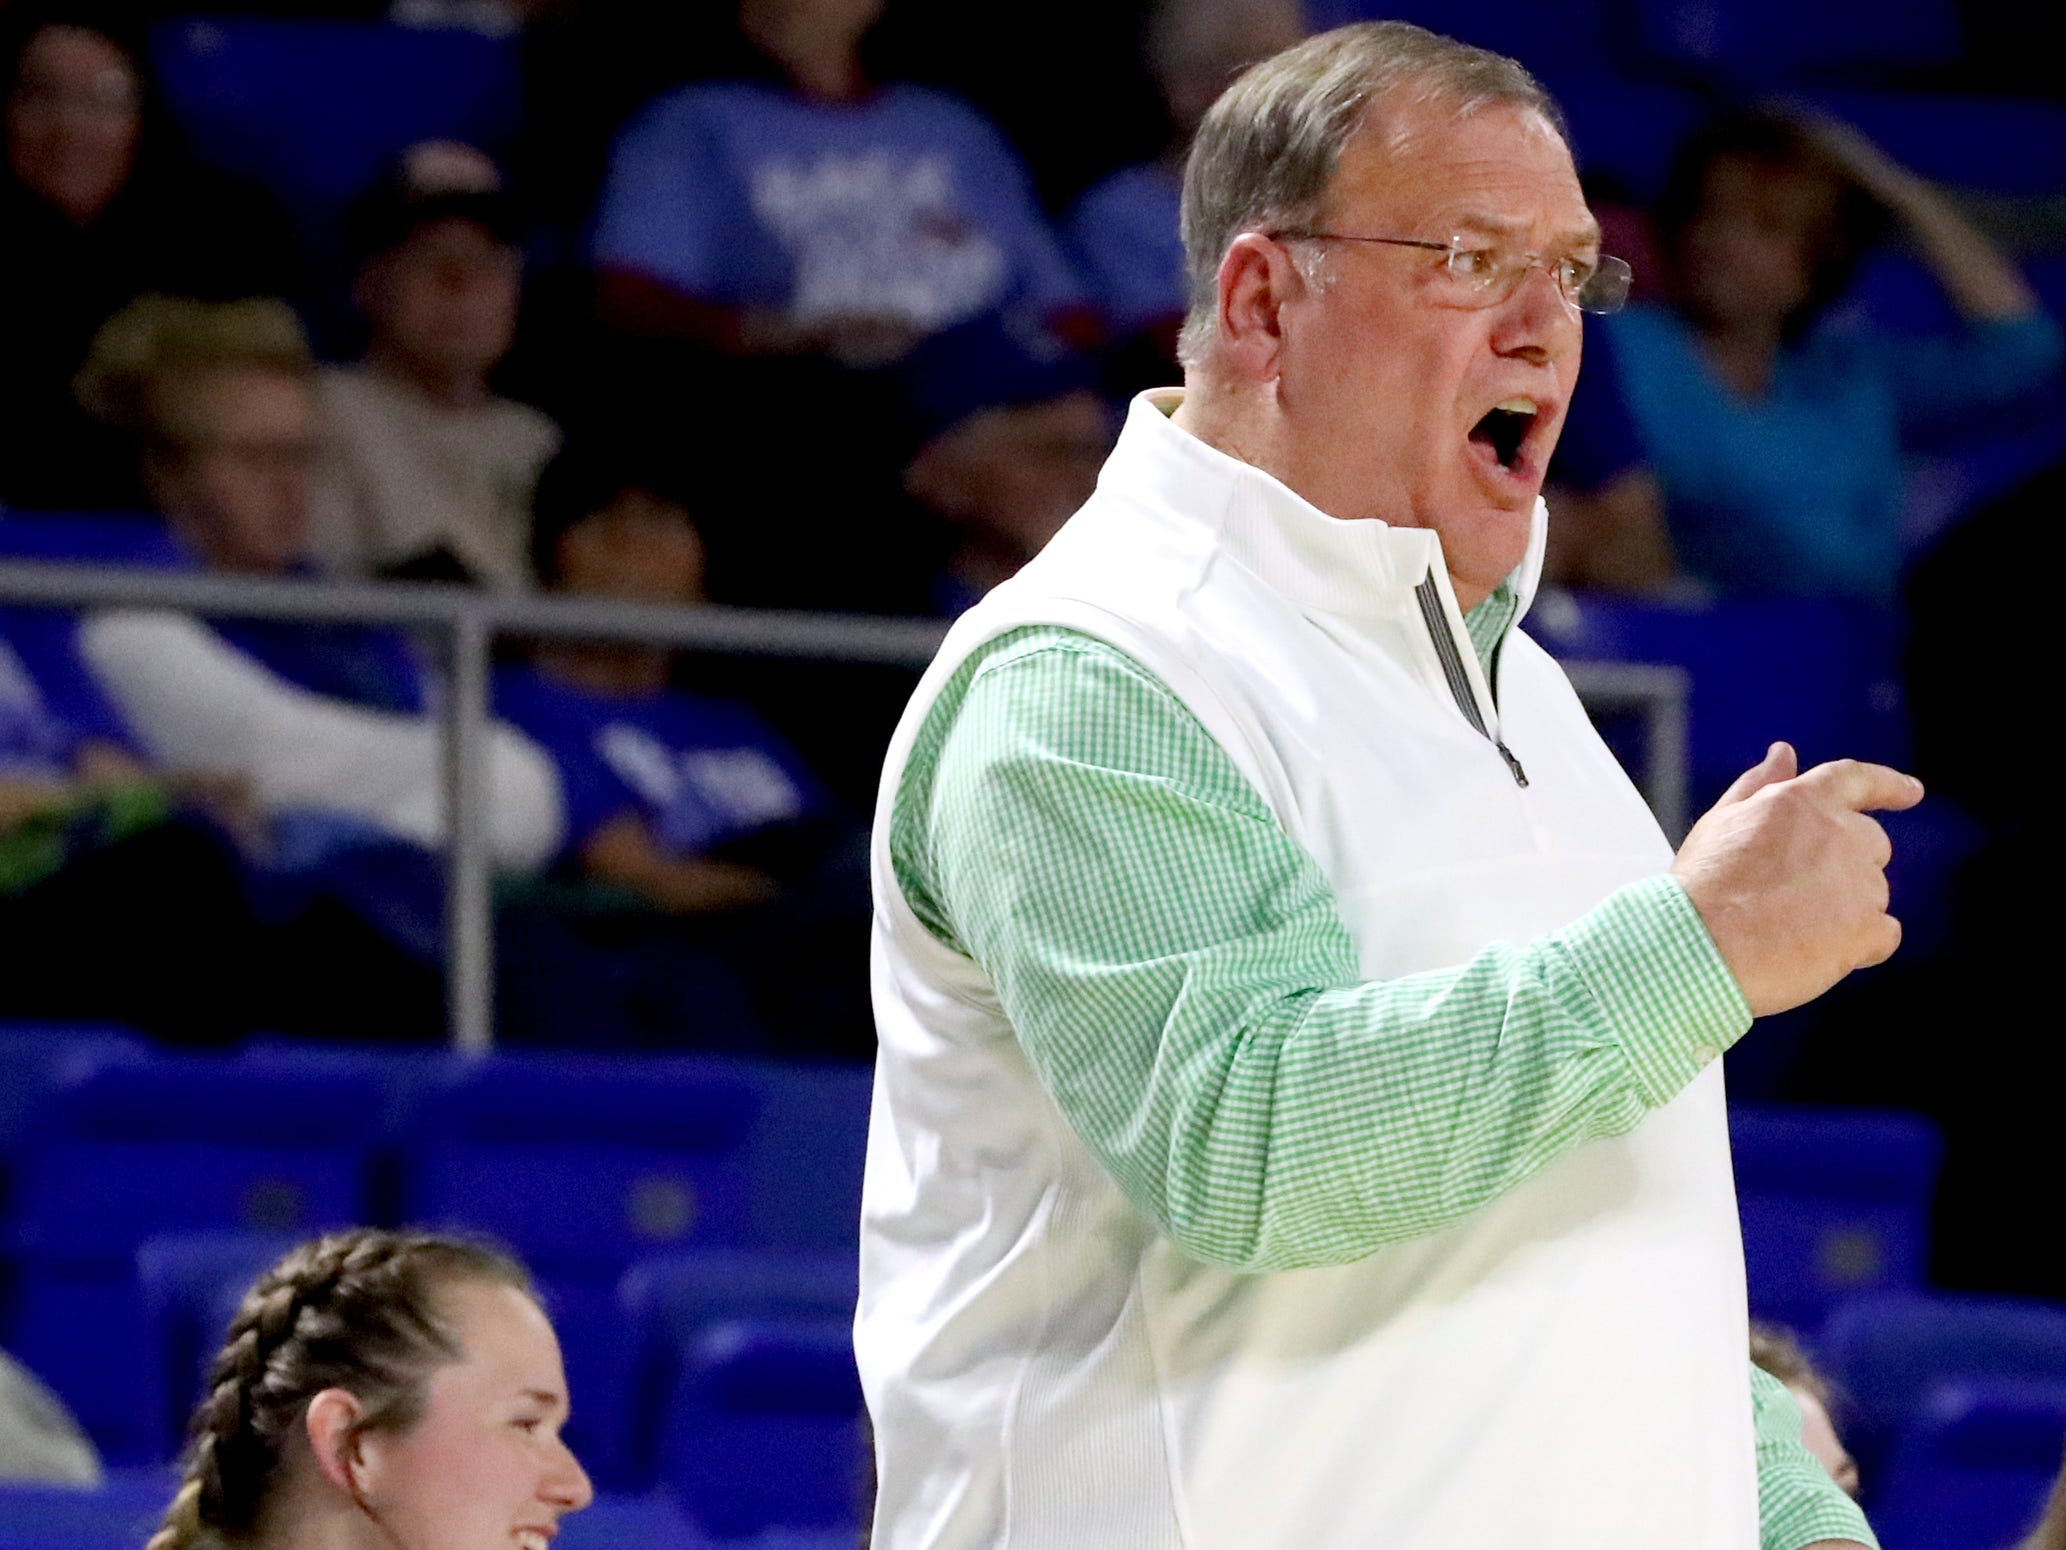 Midway's head coach Michael Hayes on the sidelines during the quarterfinal round of the TSSAA Div. 1 Class A Girls State Tournament against Eagleville, on Thursday, March 7, 2019, at Murphy Center in Murfreesboro, Tenn.